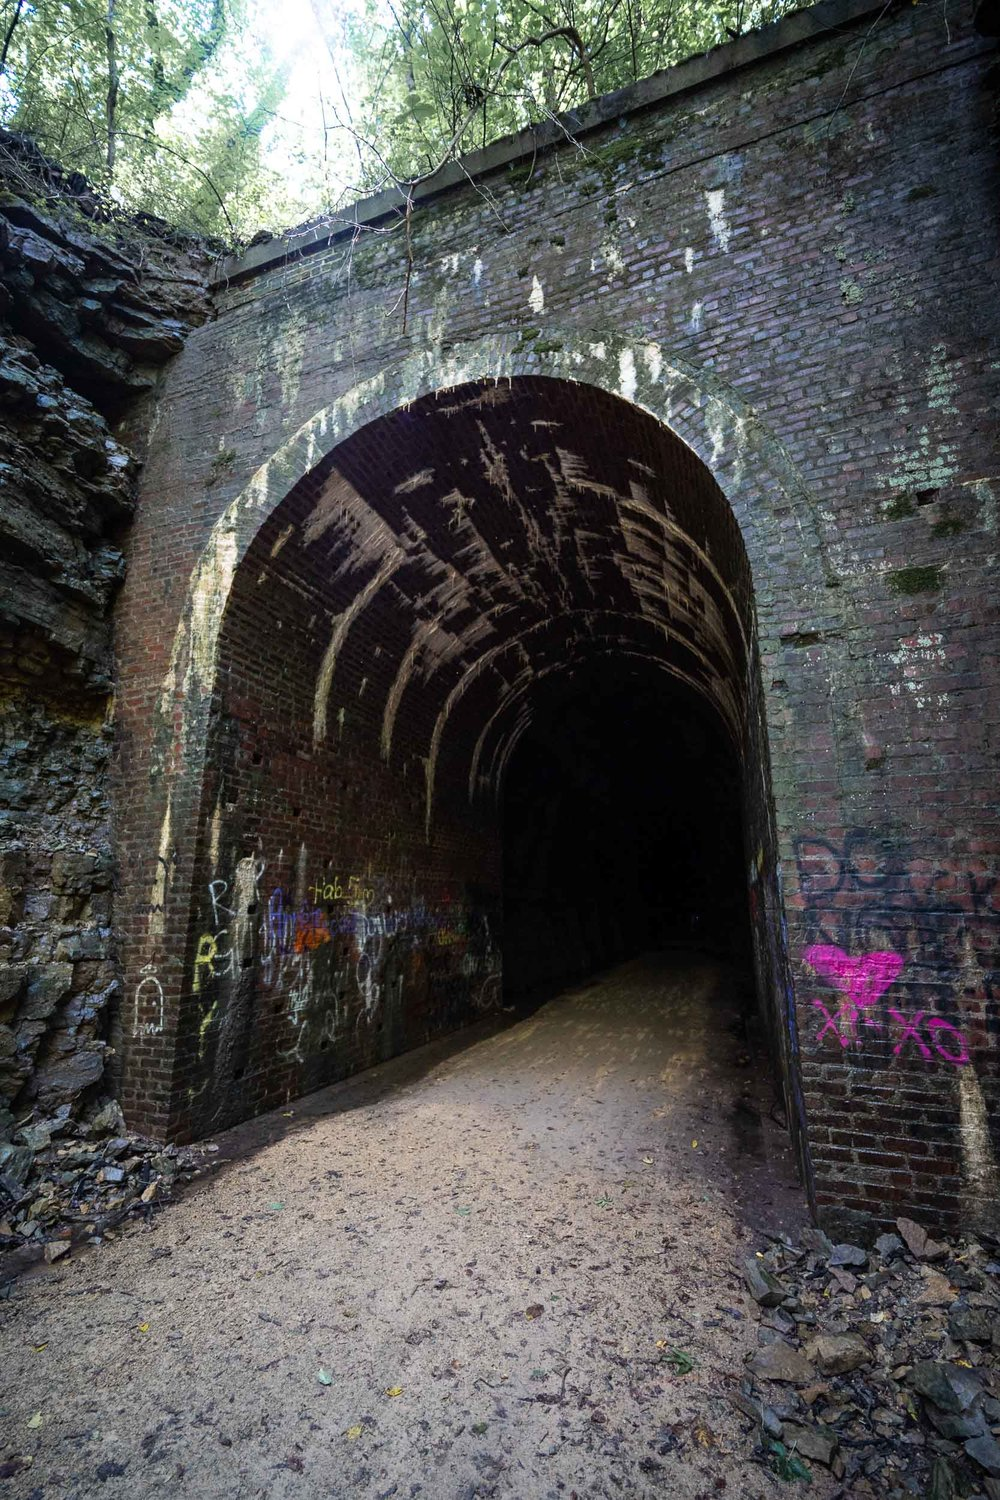 Old scary railroad Stuart Tunnel | Now a bike path | Belleville Monticello WI | Photo by BillyBengtson.com